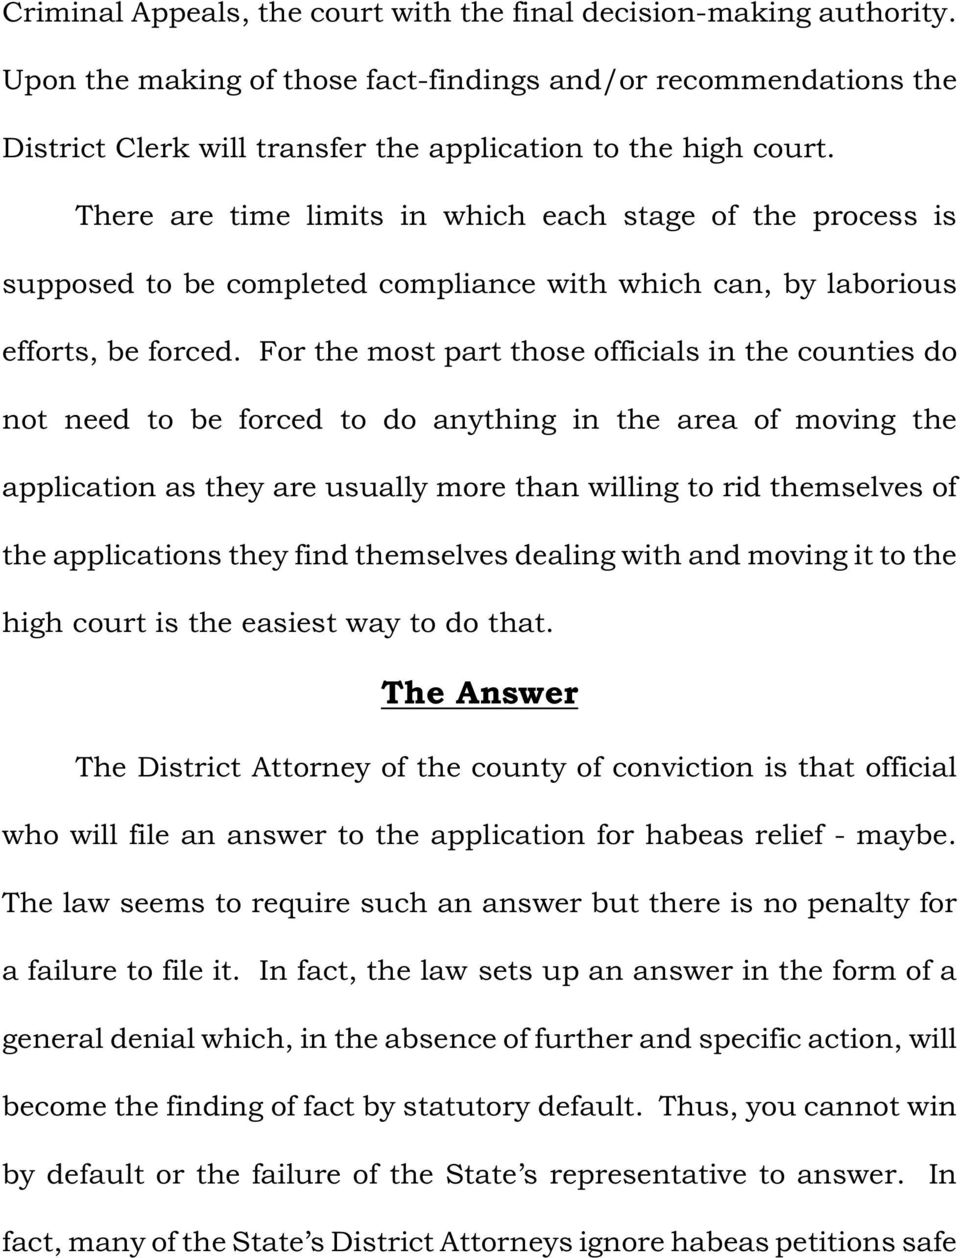 For the most part those officials in the counties do not need to be forced to do anything in the area of moving the application as they are usually more than willing to rid themselves of the